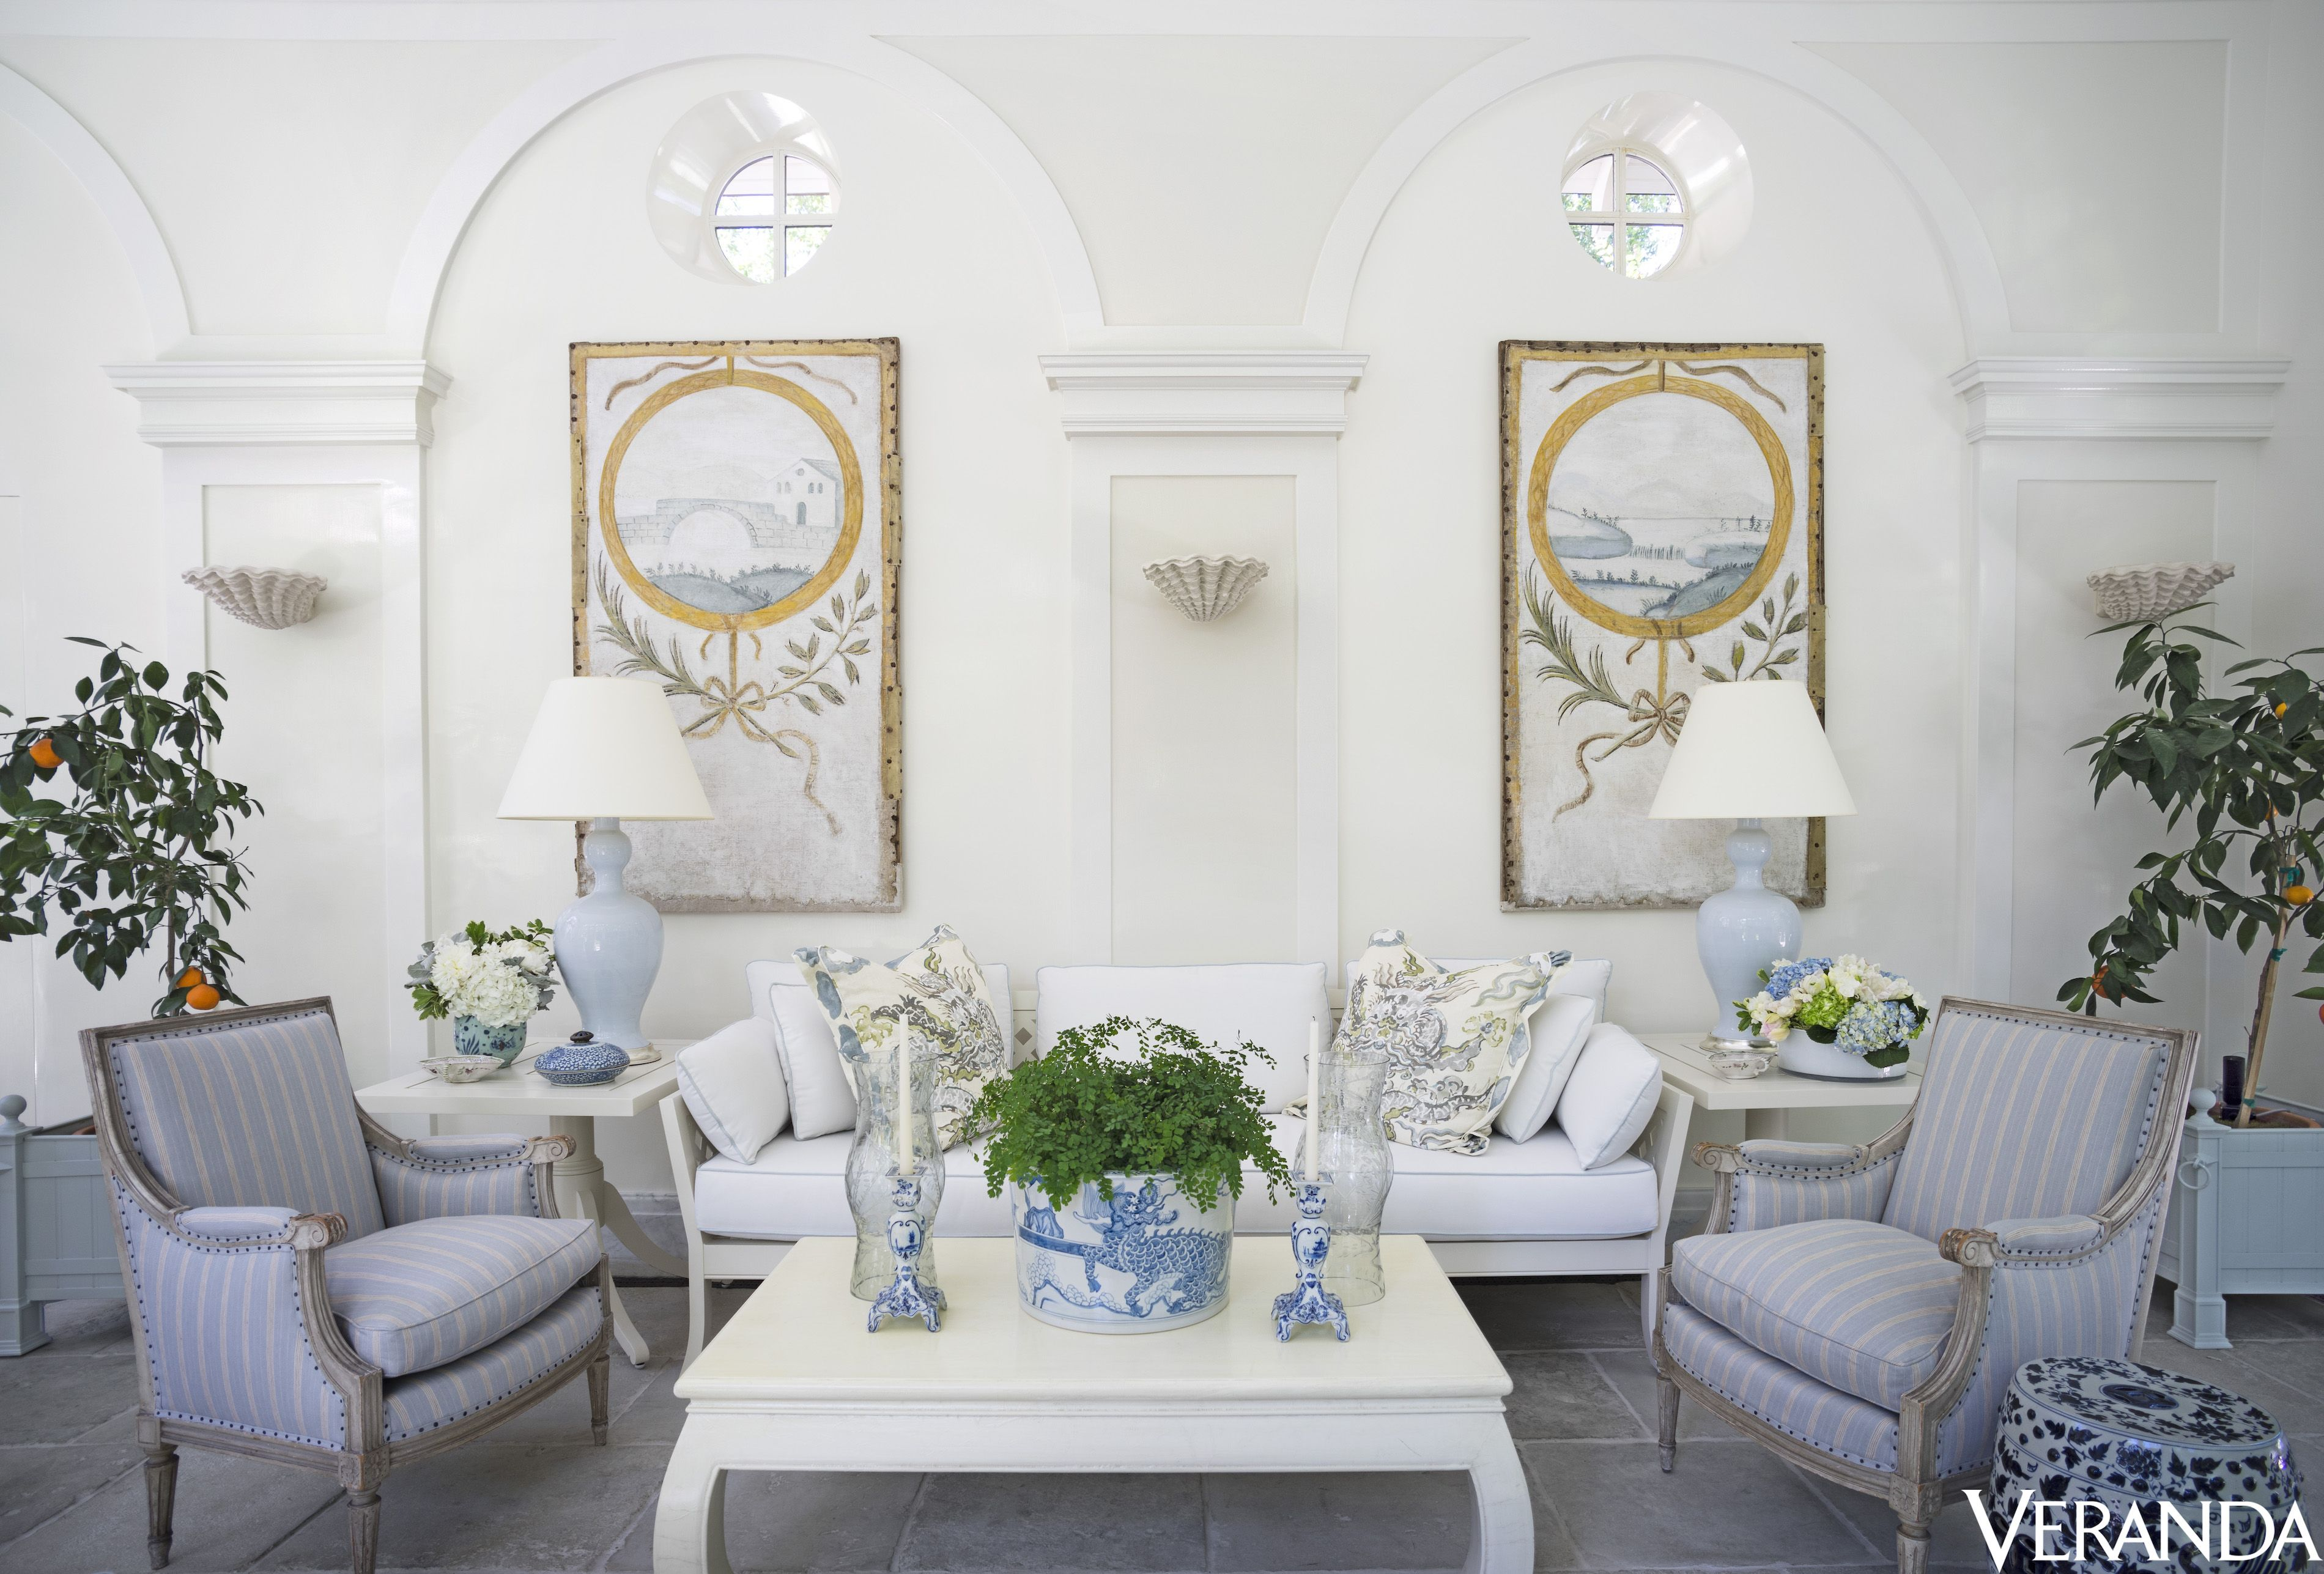 40+ Best White Room Ideas - How to Decorate White Bedroom